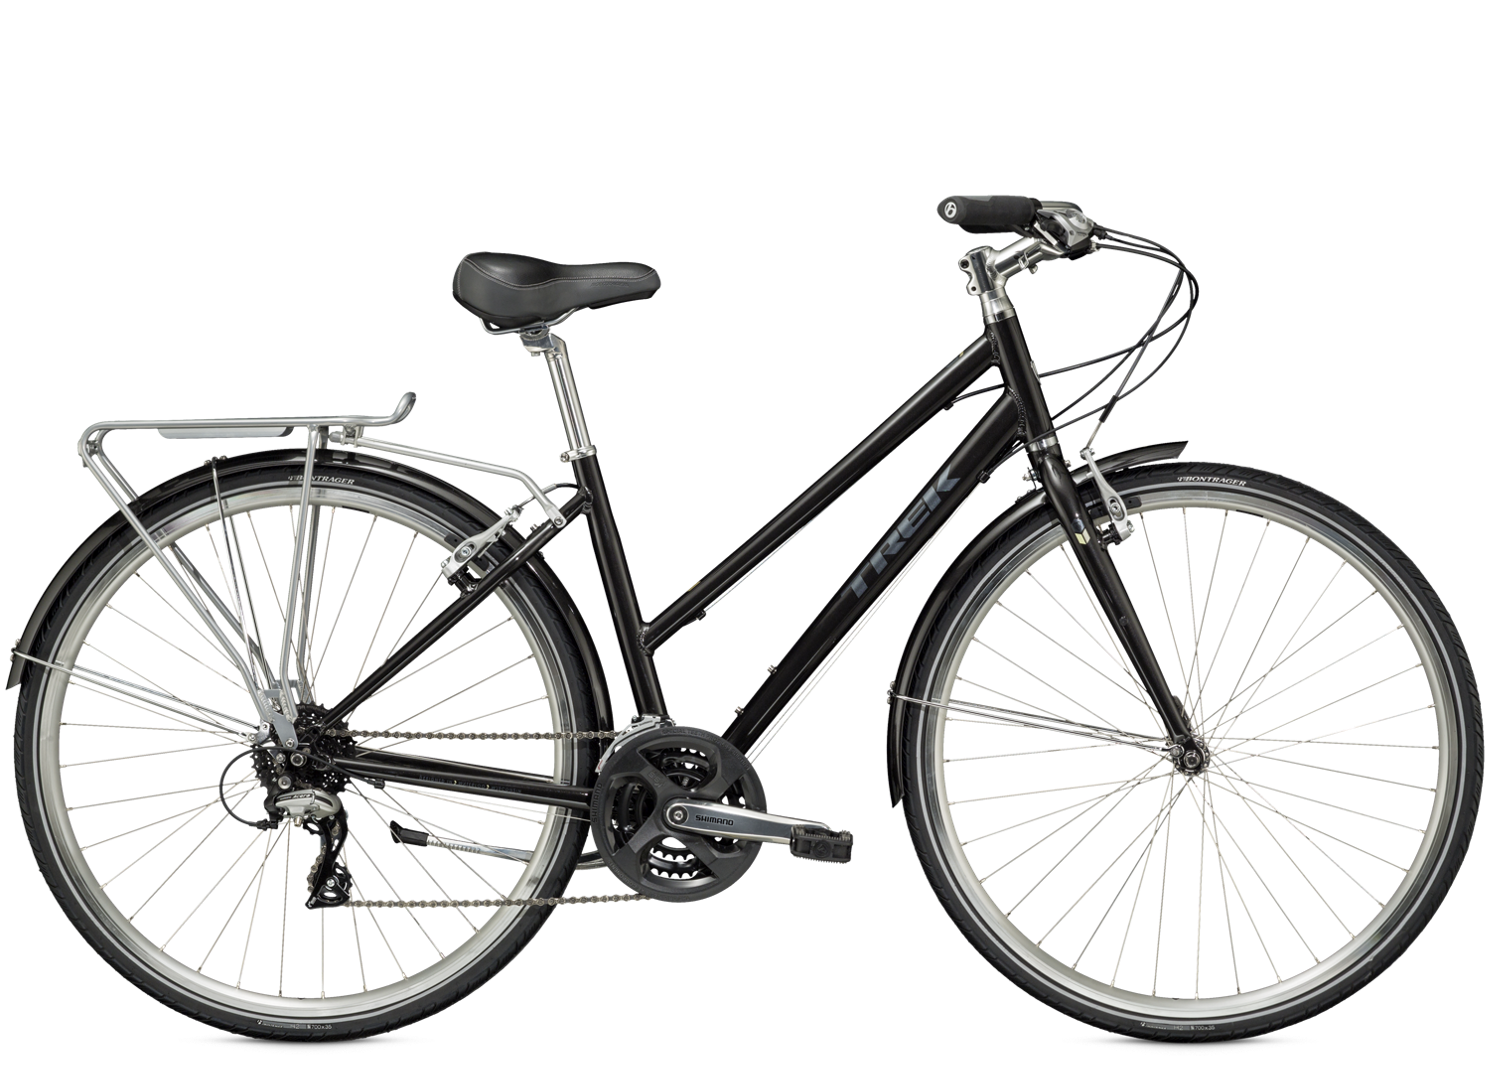 Allant Wsd Trek Bicycle